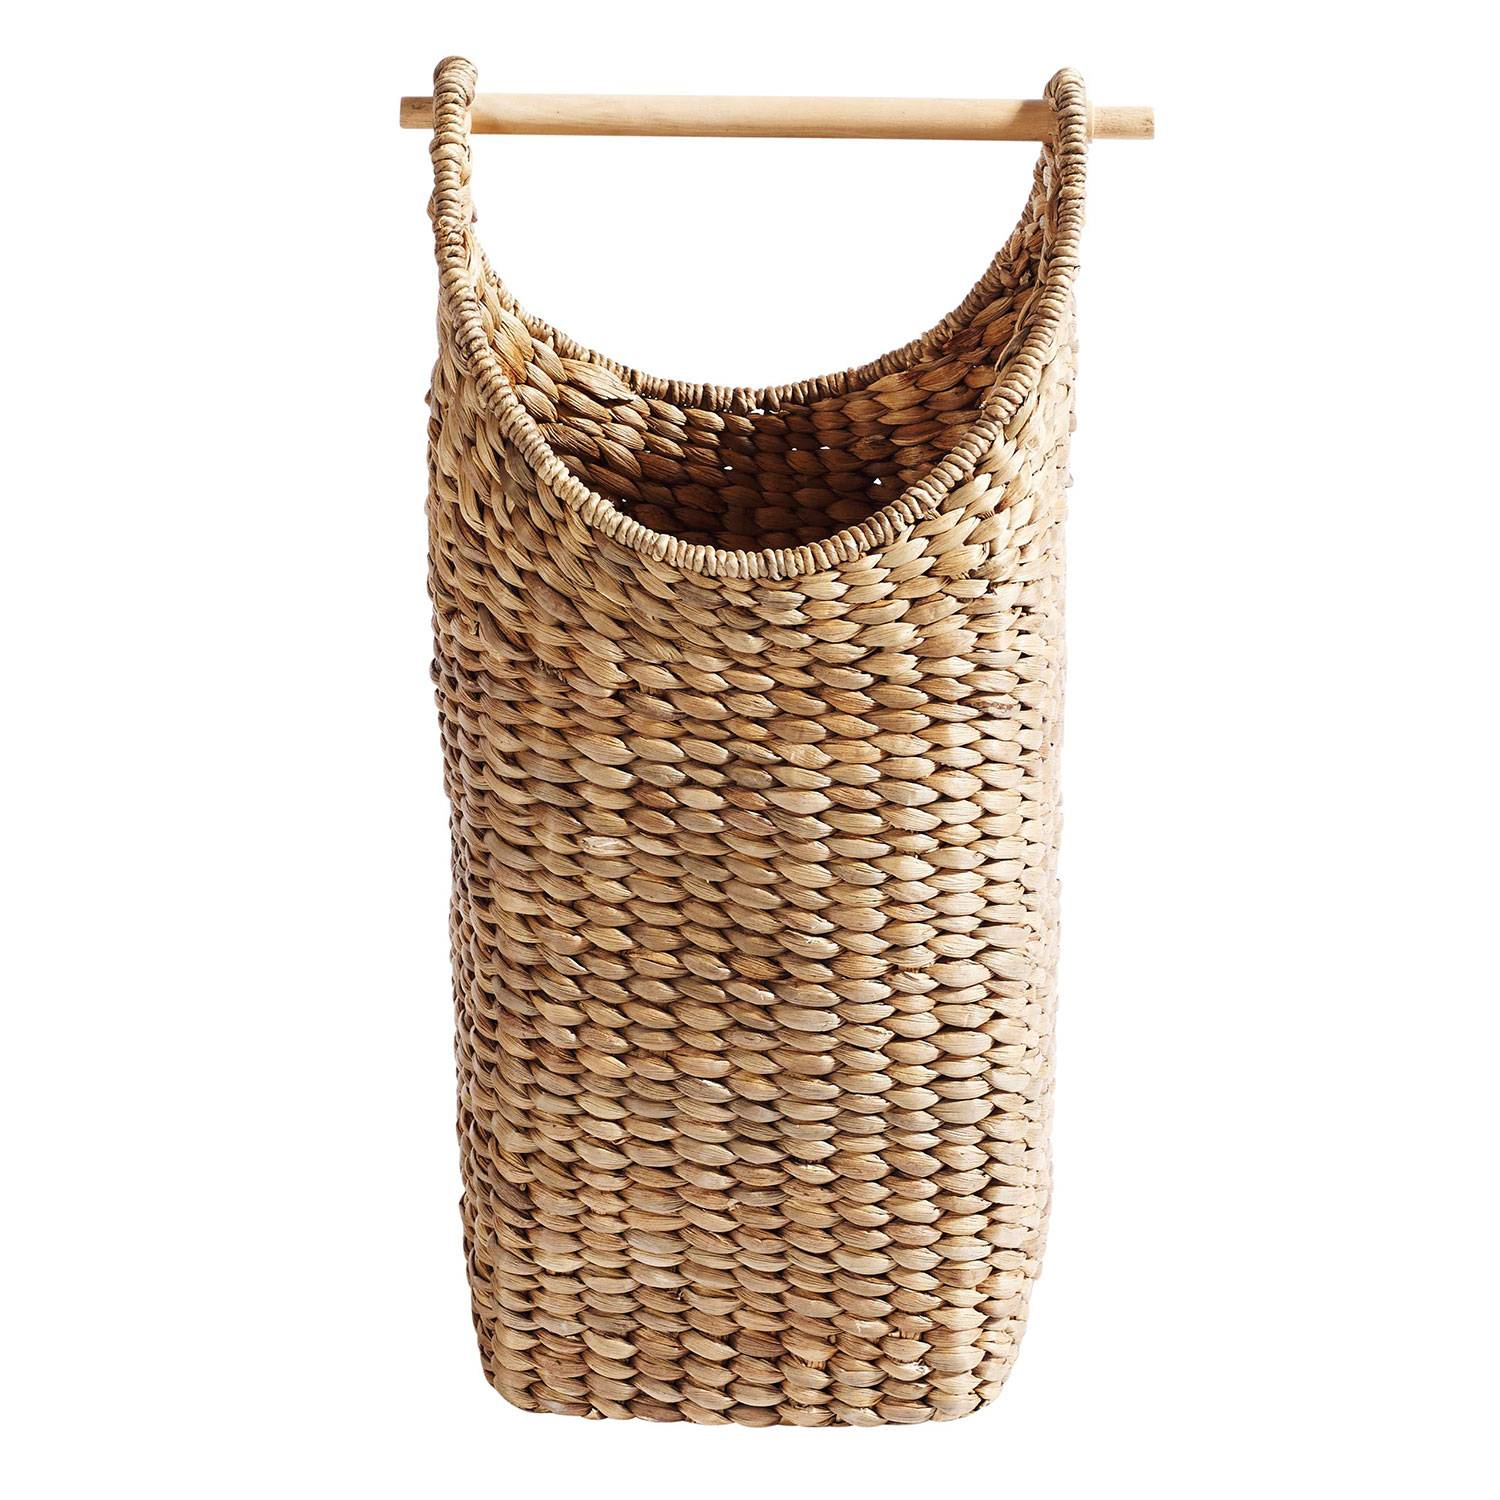 Muubs Basket Kori H60cm Ø30cm, Nature